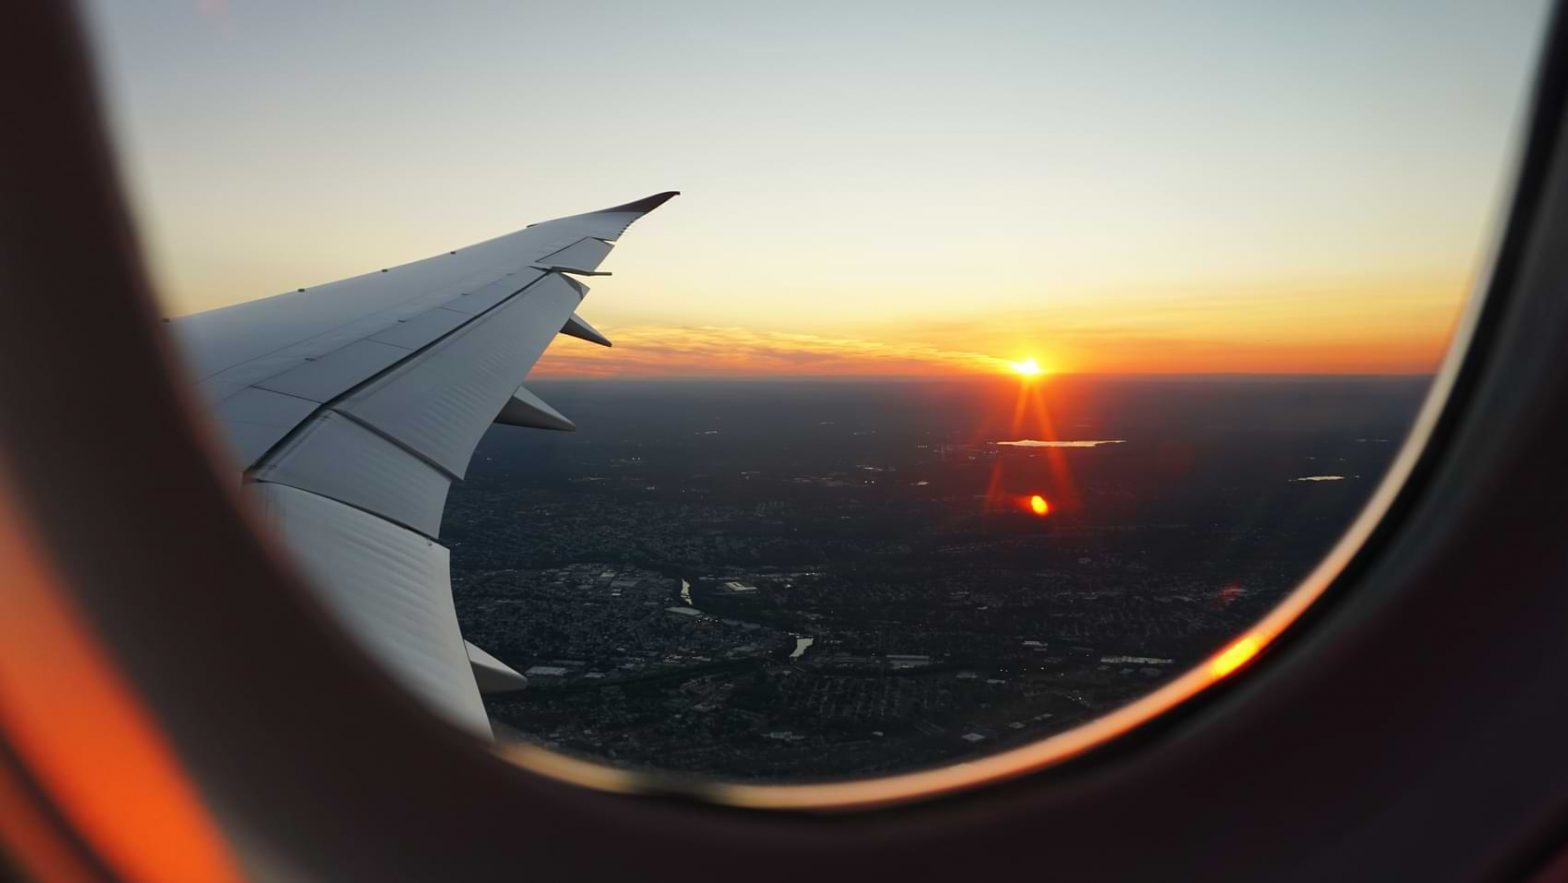 A sunset can be seen lighting up the skyline from the view of an airplane passenger seat.